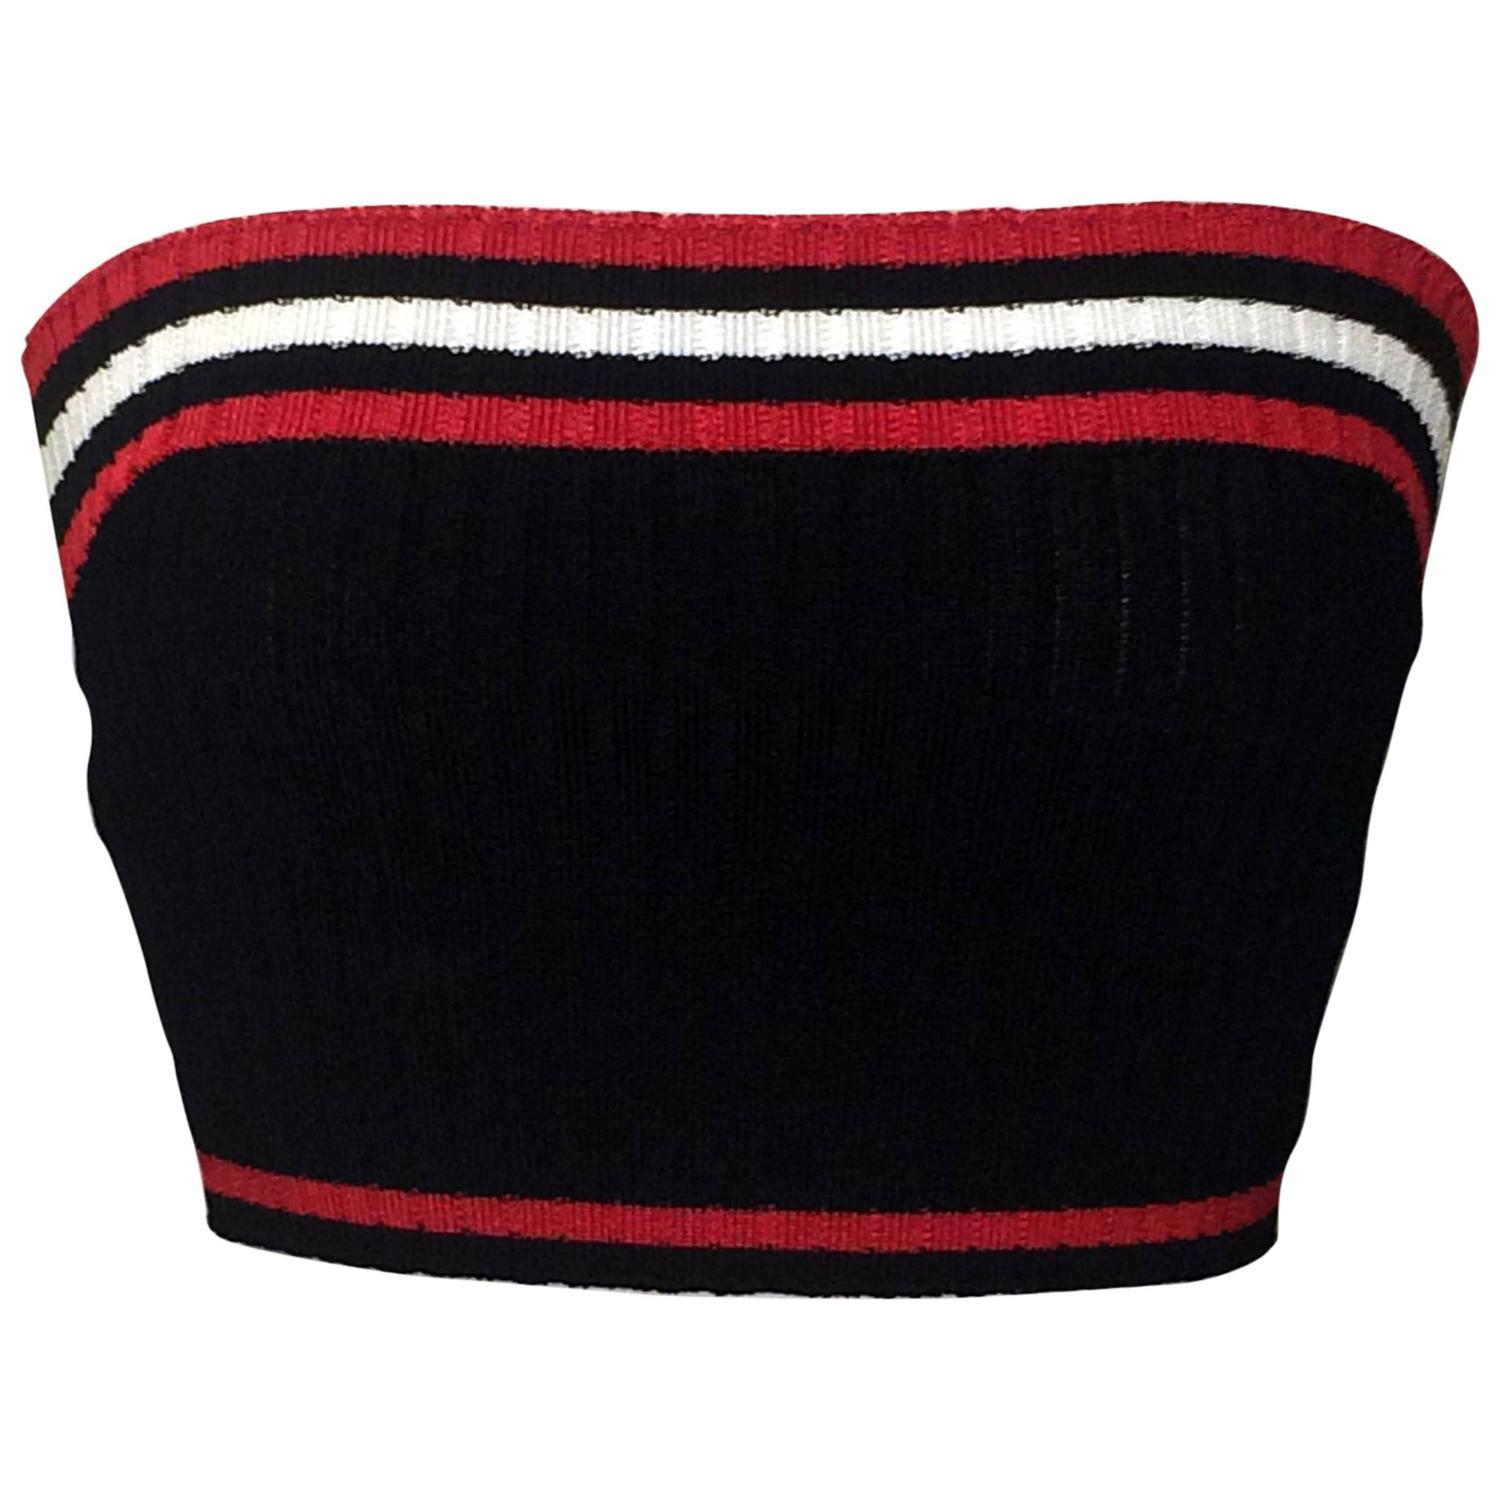 35e90aa0c3 Prada Rib Knit Sporty Red White and Blue Cropped Tube Top at 1stdibs